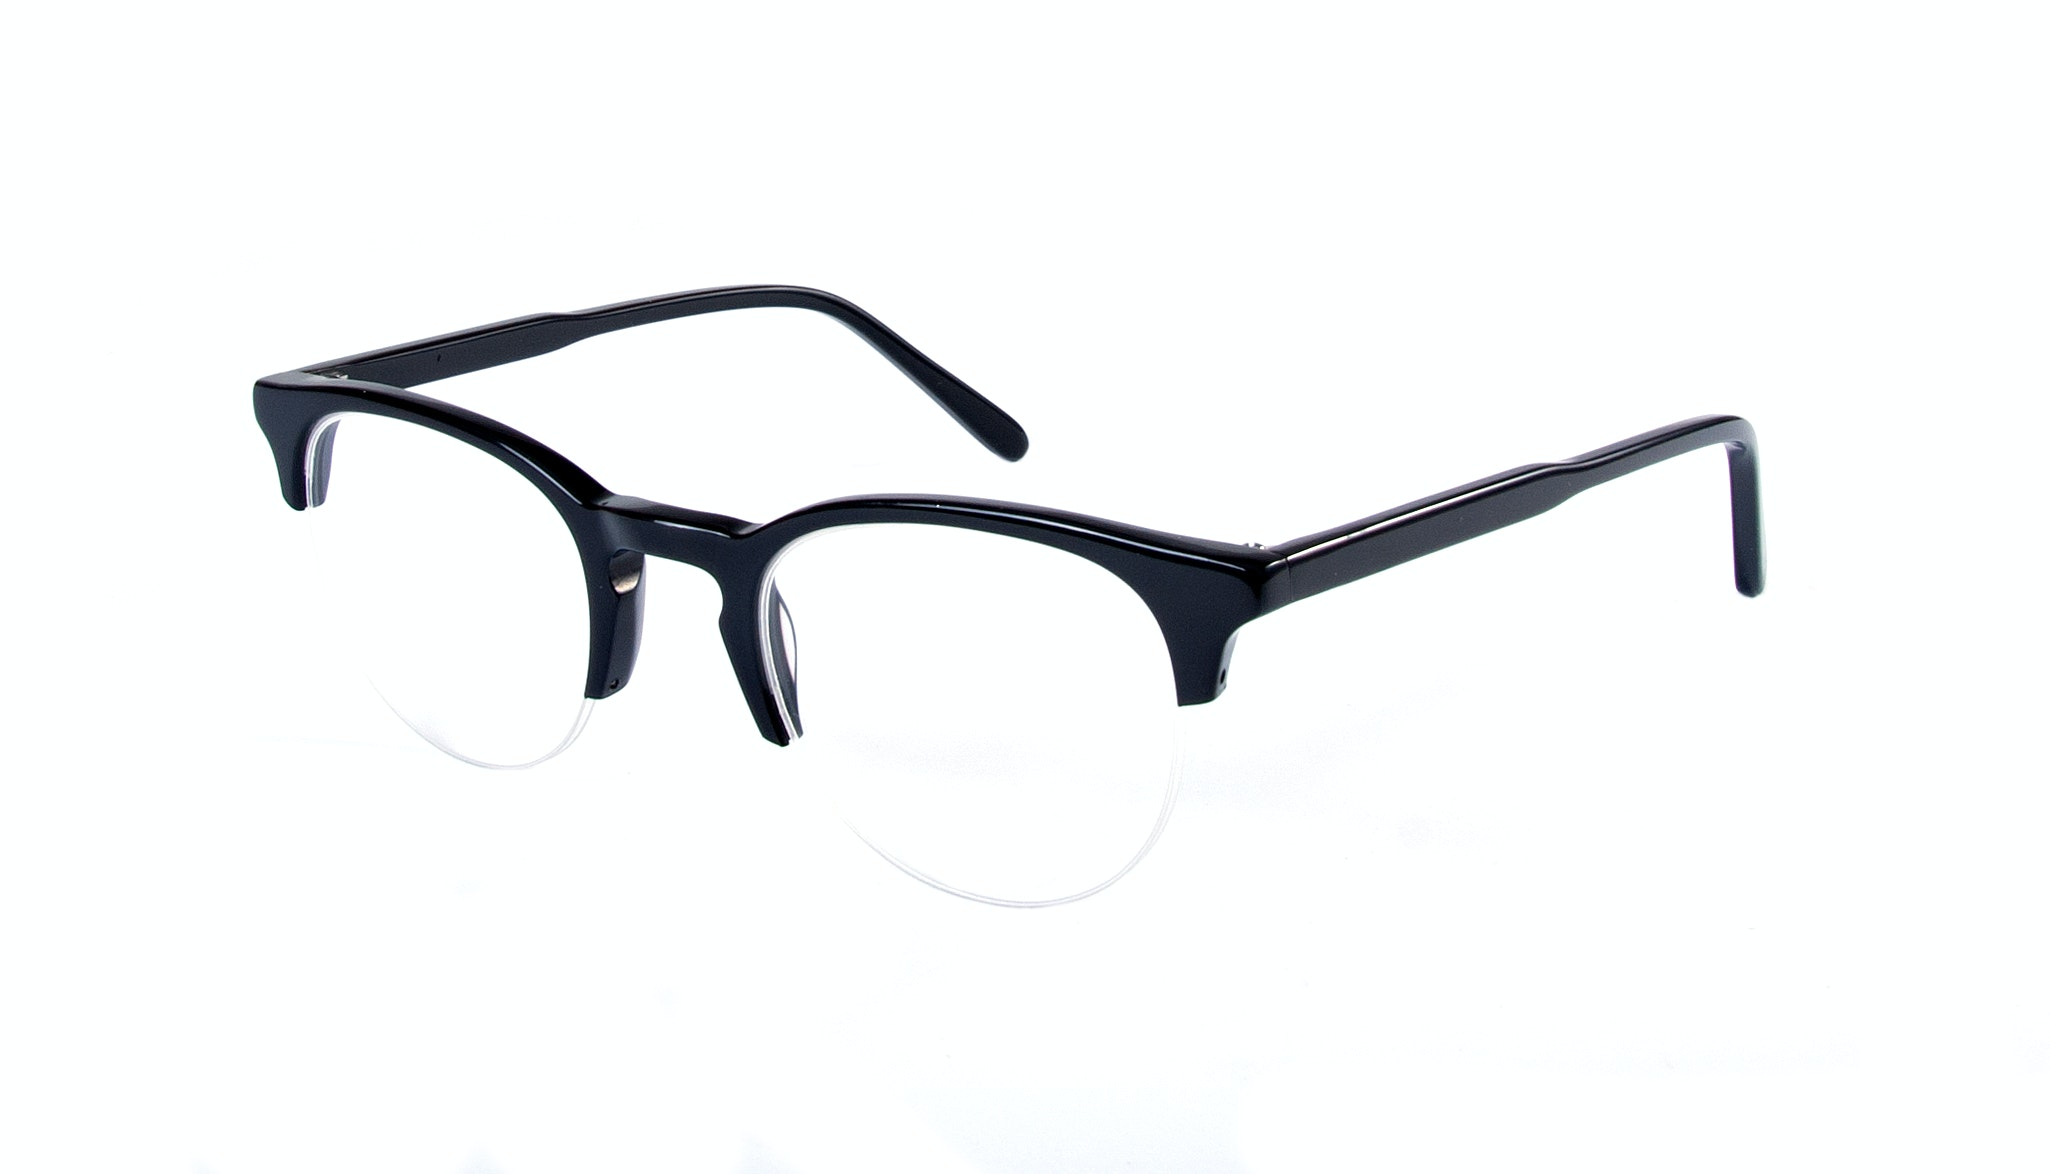 Affordable Fashion Glasses Round Semi-Rimless Eyeglasses Men Women Cult Light Onyx Tilt